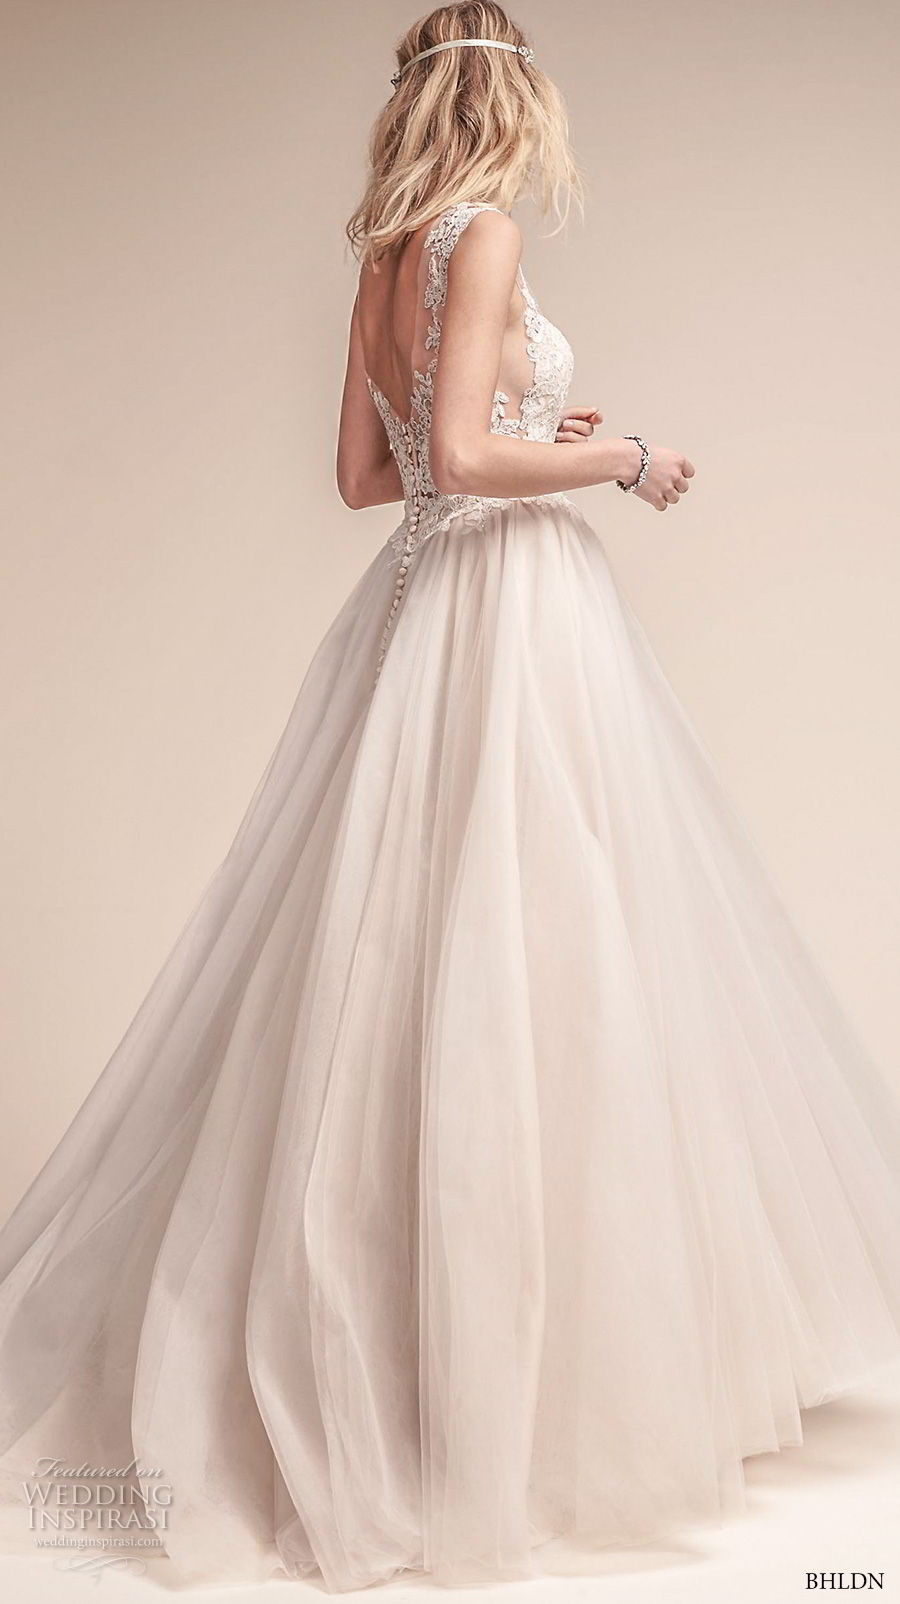 bhldn fall 2017  americana bridal cap sleeves illusion bateau neck sweetheart neckline heavily embellished bodice tulle skirt romantic a  line wedding dress open scoop back sweep train (carly) sdv